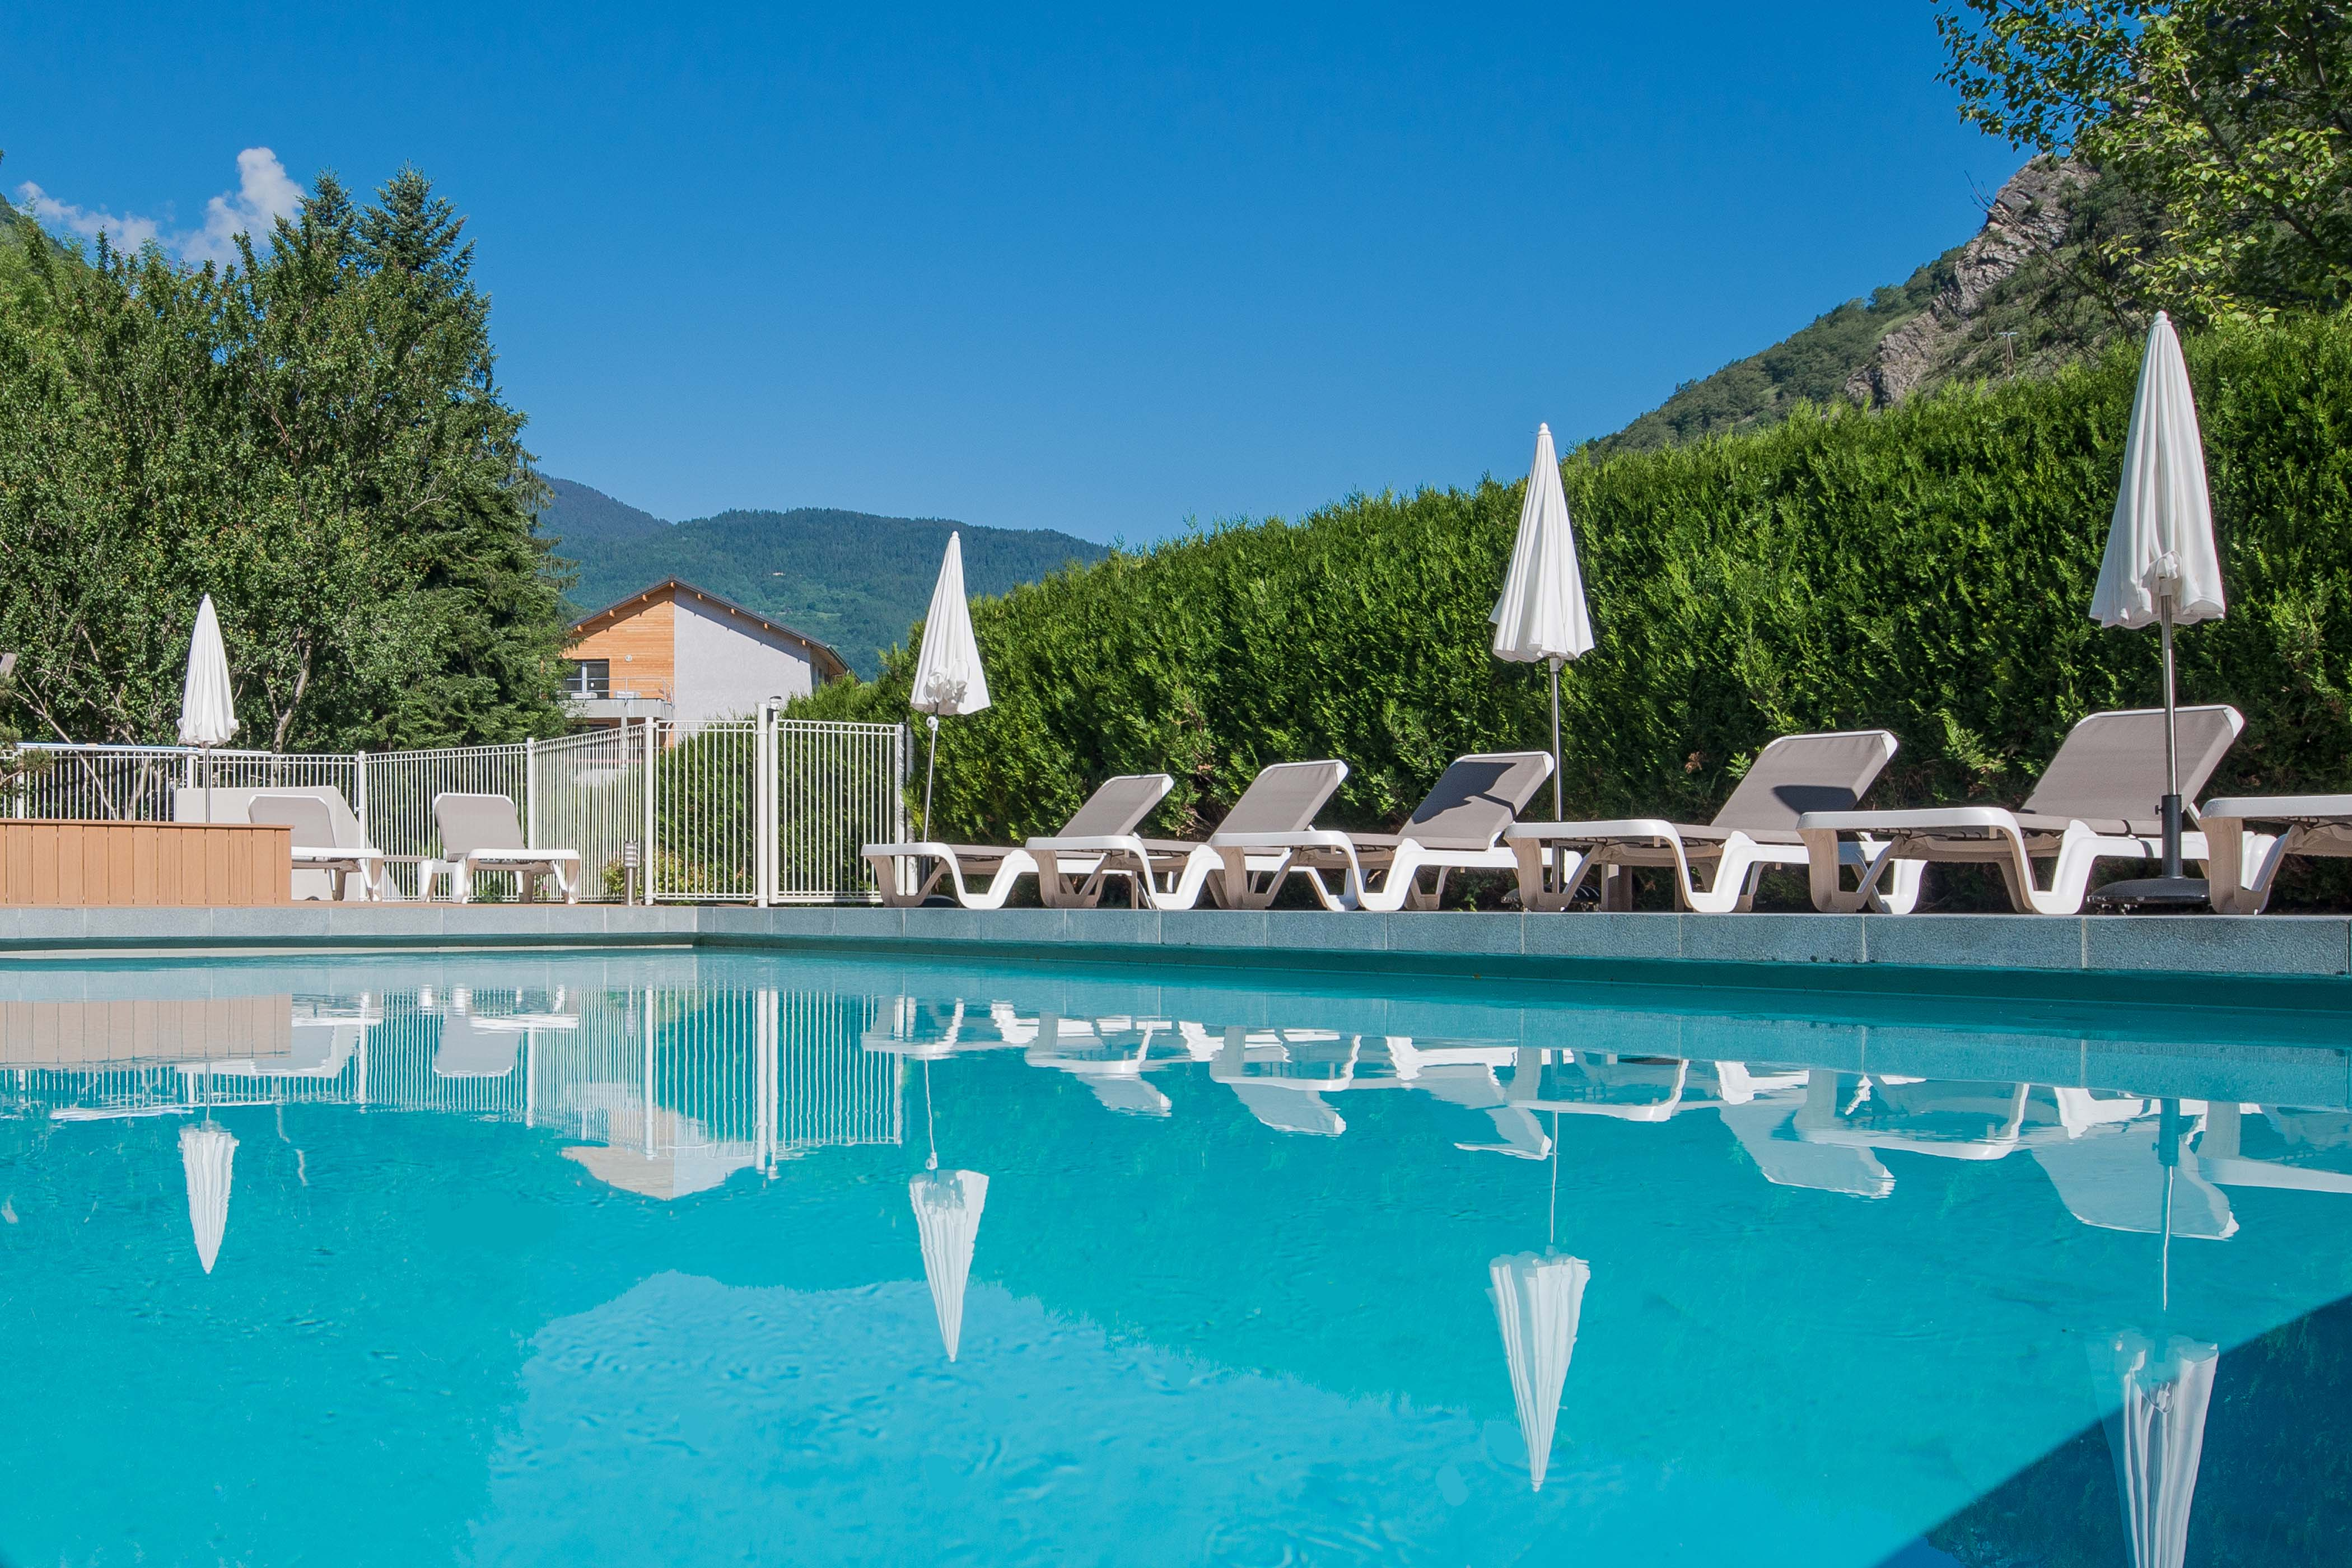 Top Hotel family resort french alps : Savoy Hotel Brides les Bains  SO12